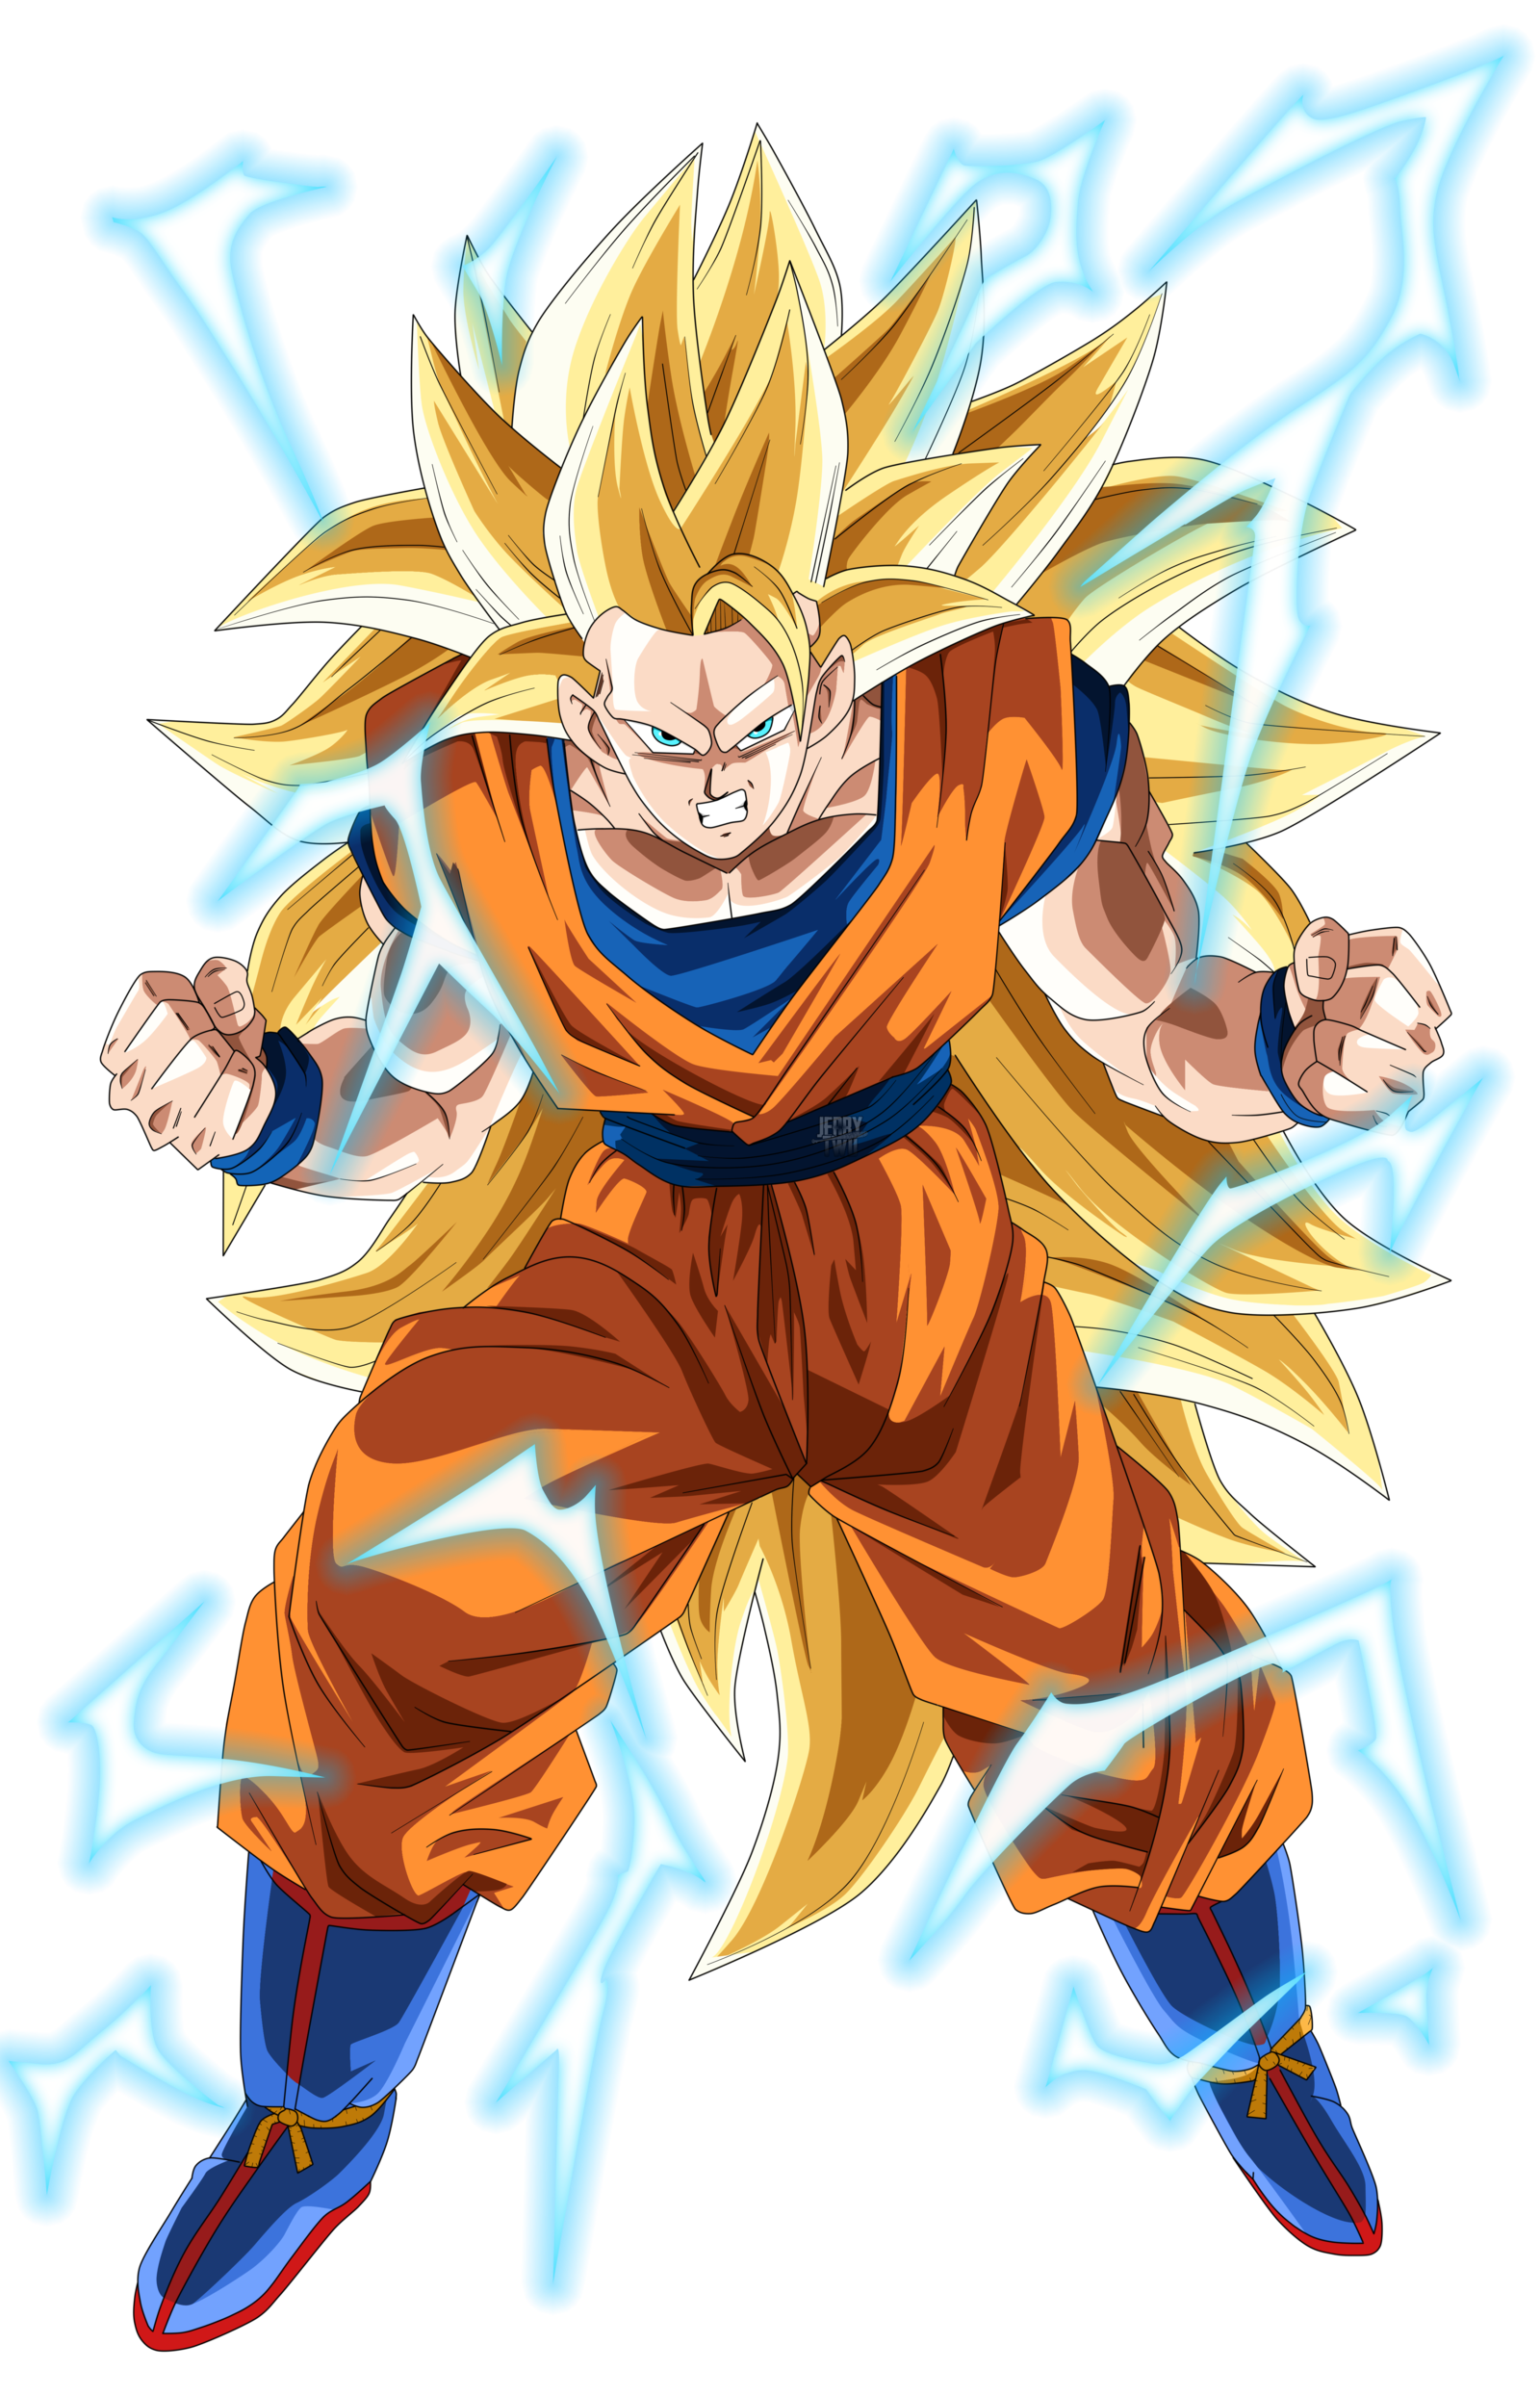 Son Goku Super Saiyajin 3 - Dragon Ball by UrielALV - Dragon Ball PNG